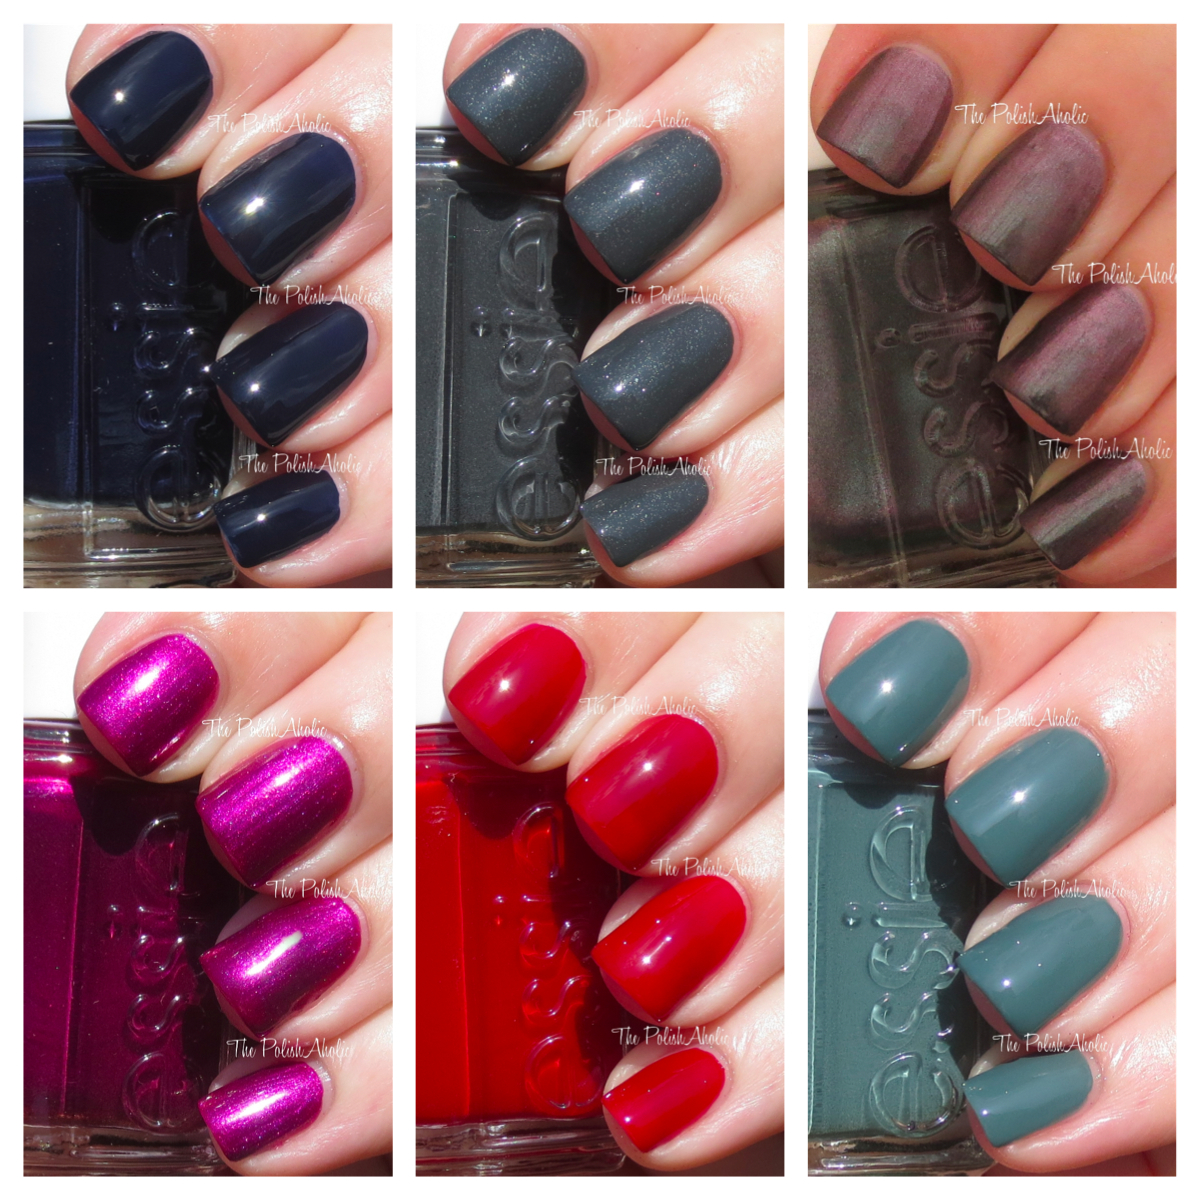 Essie Fall Nail Colors: The PolishAholic: Essie Fall 2013 Collection Swatches